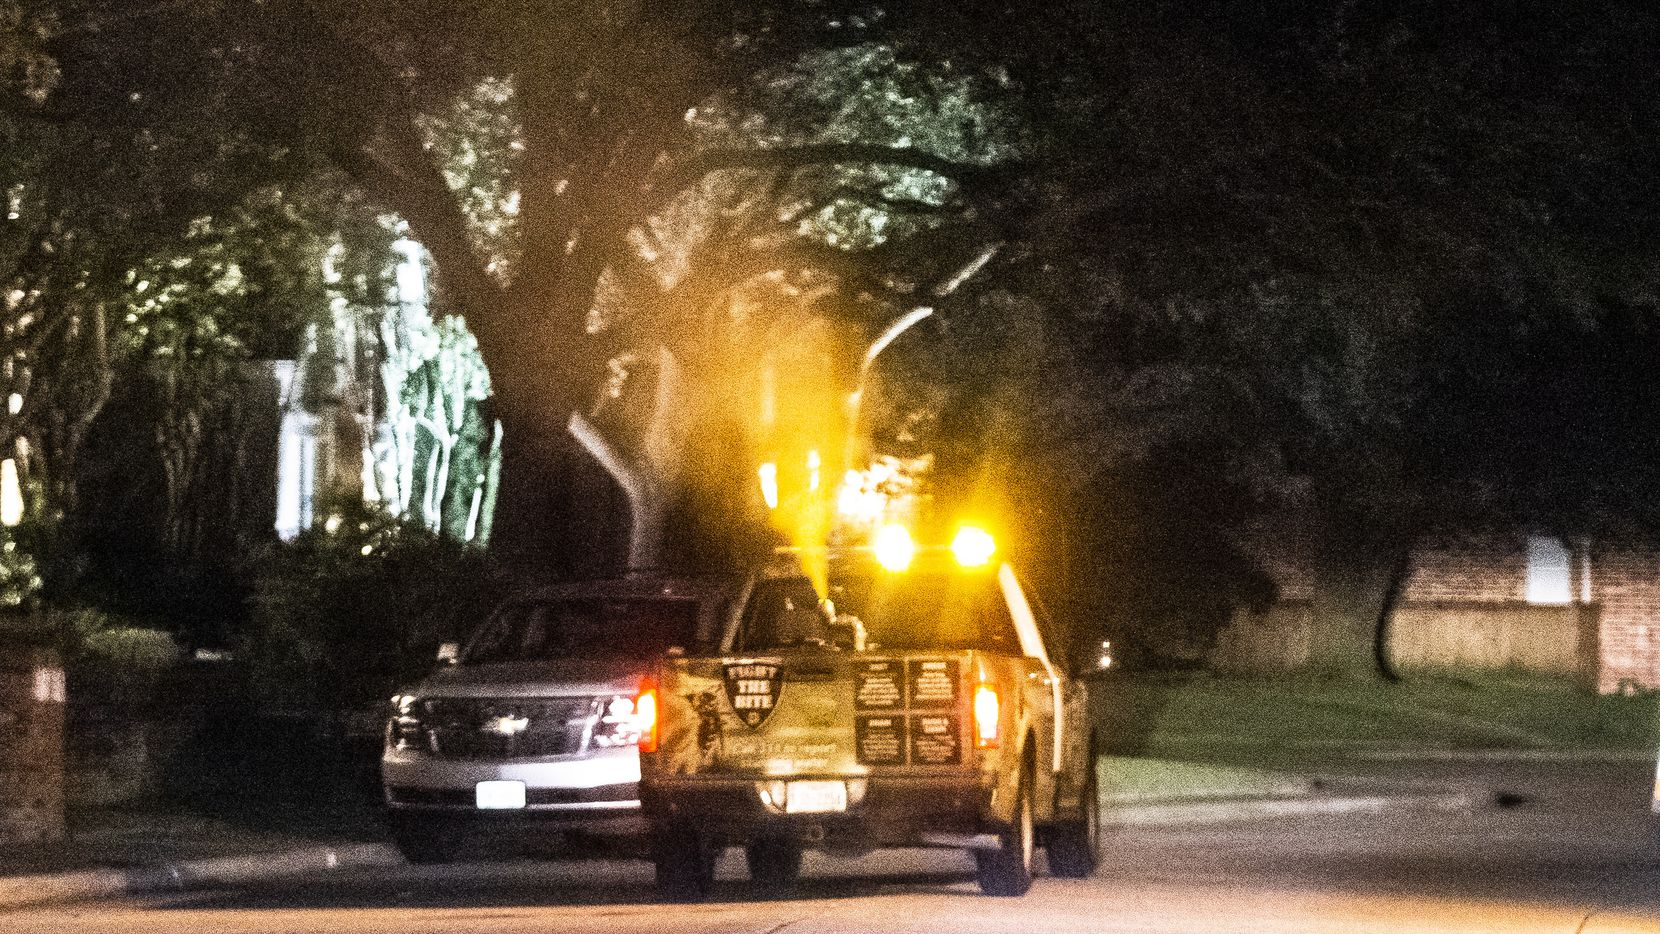 """Water-based insecticides """"that offer low toxicity, low odor, rapid biodegradation and high mosquito mortality"""" will be used in the 7000 block of Shady Grove Road and in the 8700 block of Davis Boulevard to kill mosquitoes this weekend, Keller city officials said."""